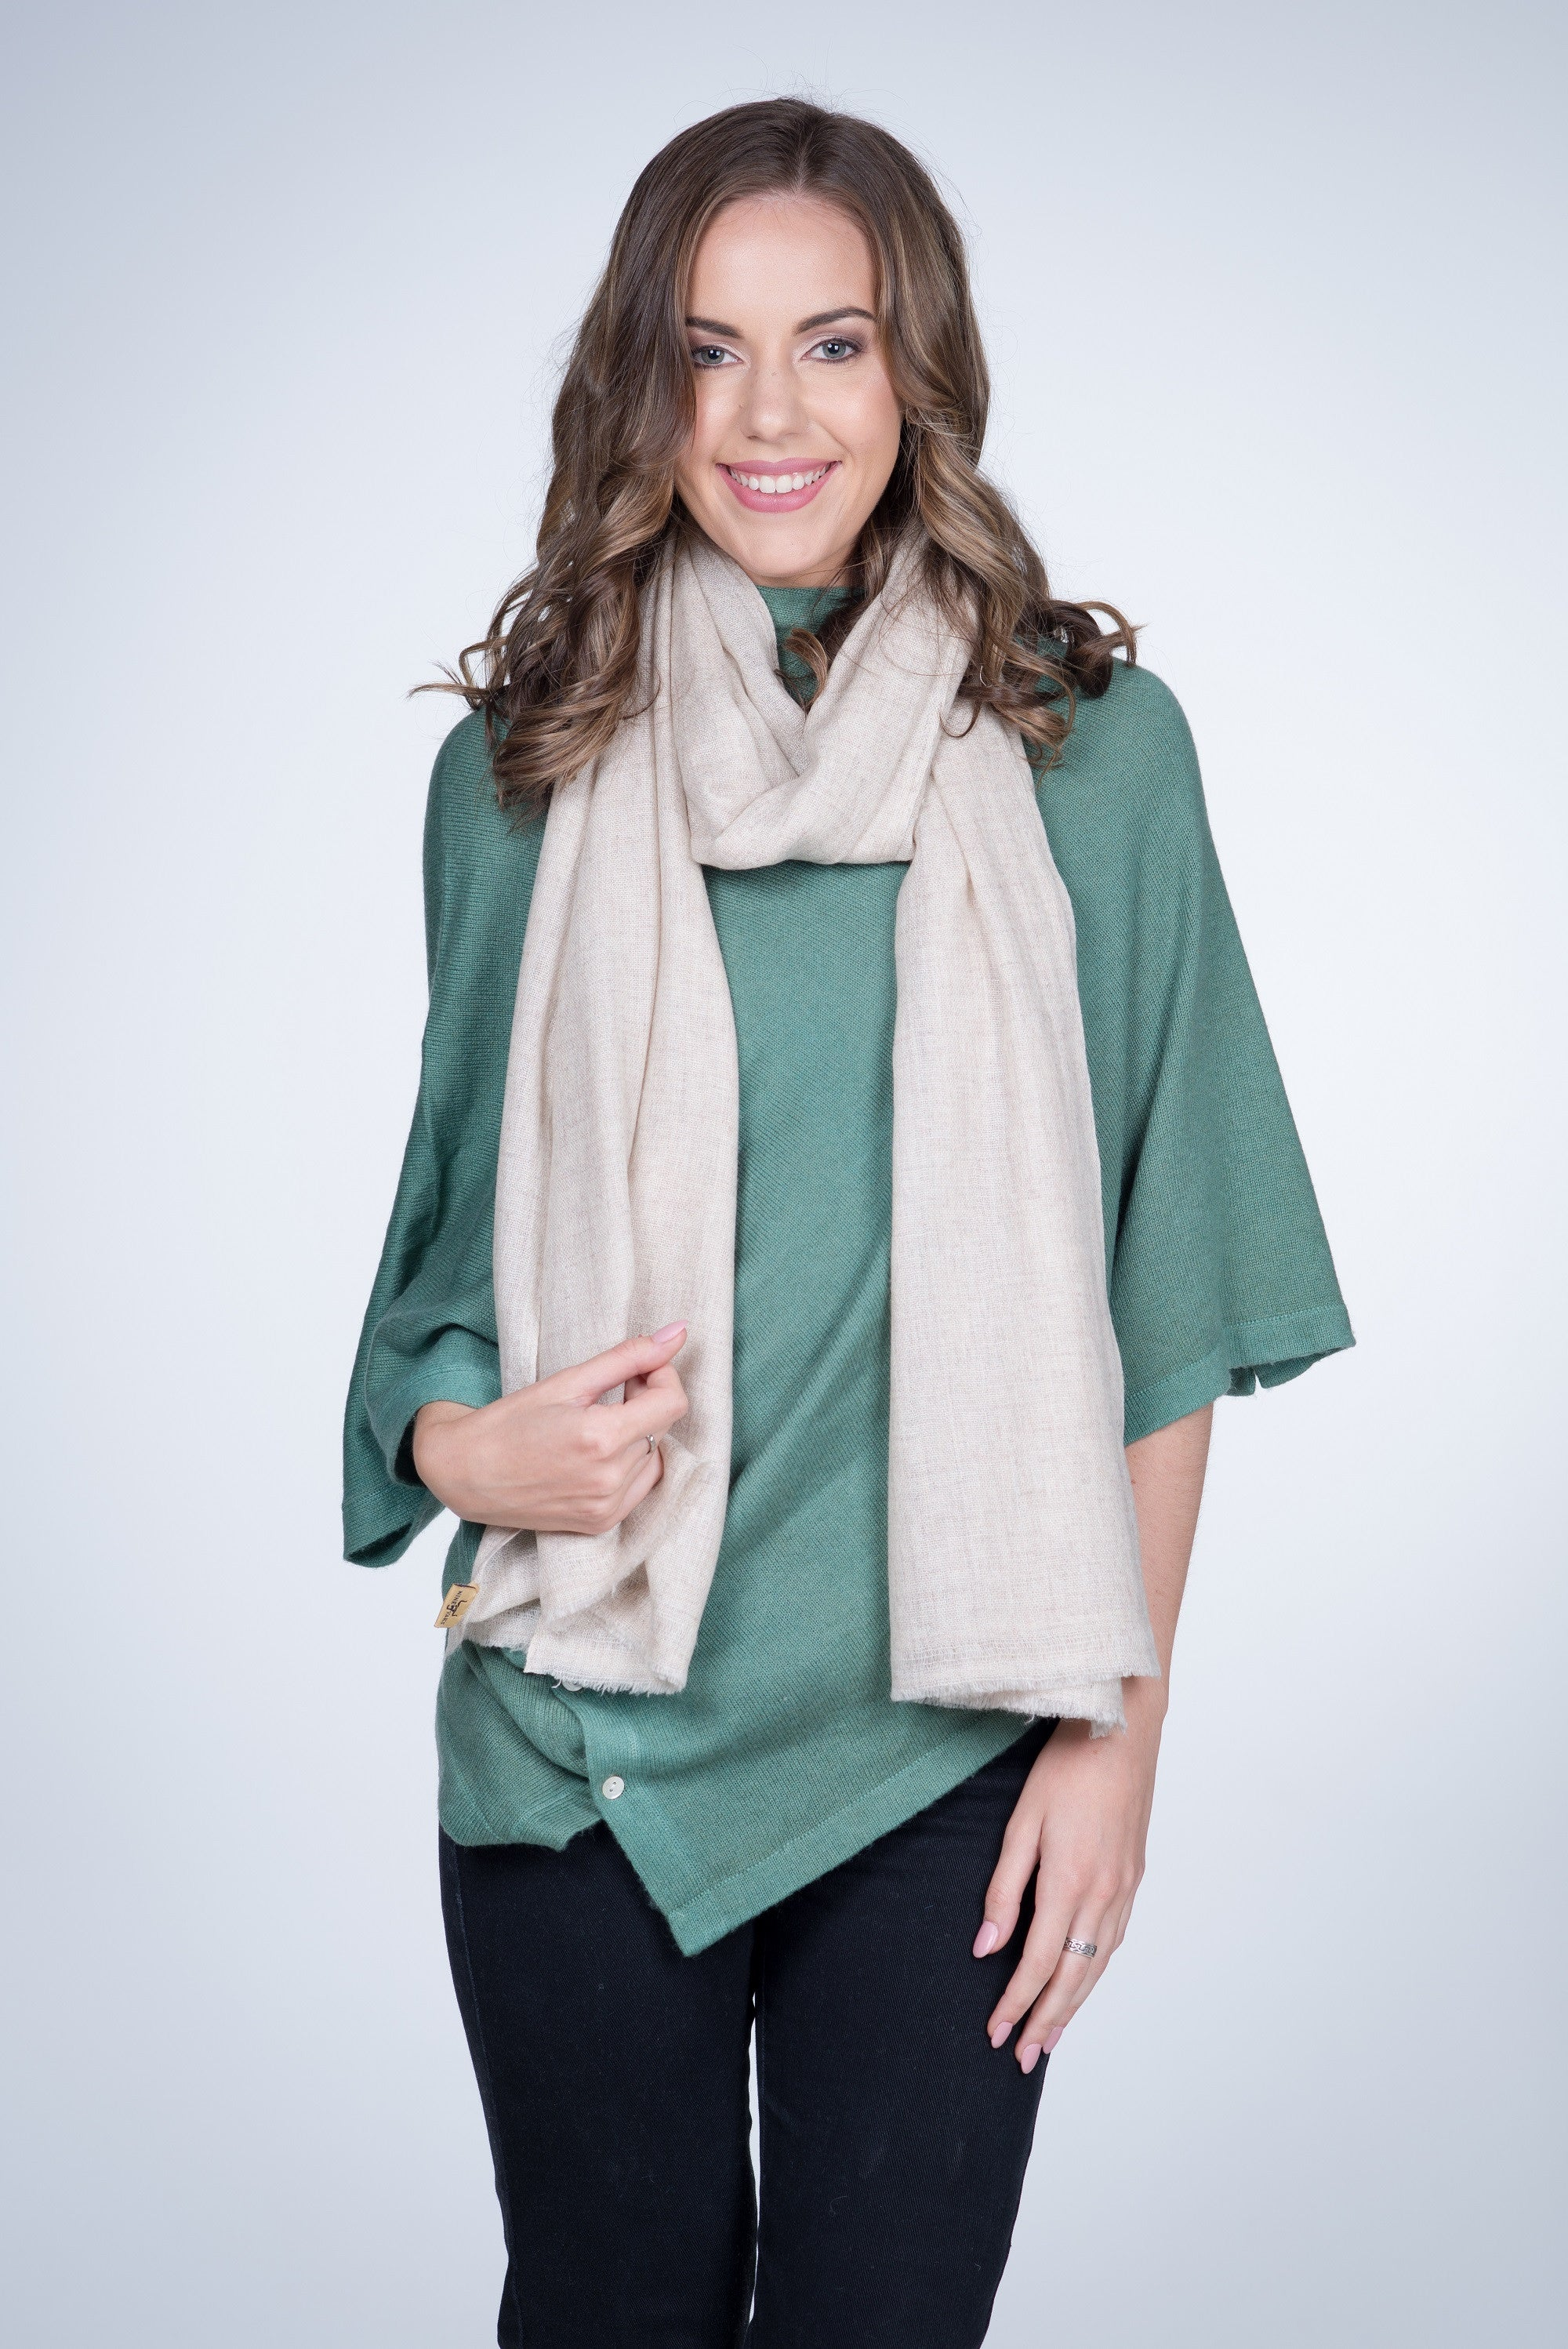 Nine Yaks Natural Cashmere Shawl - Cream -Accessories